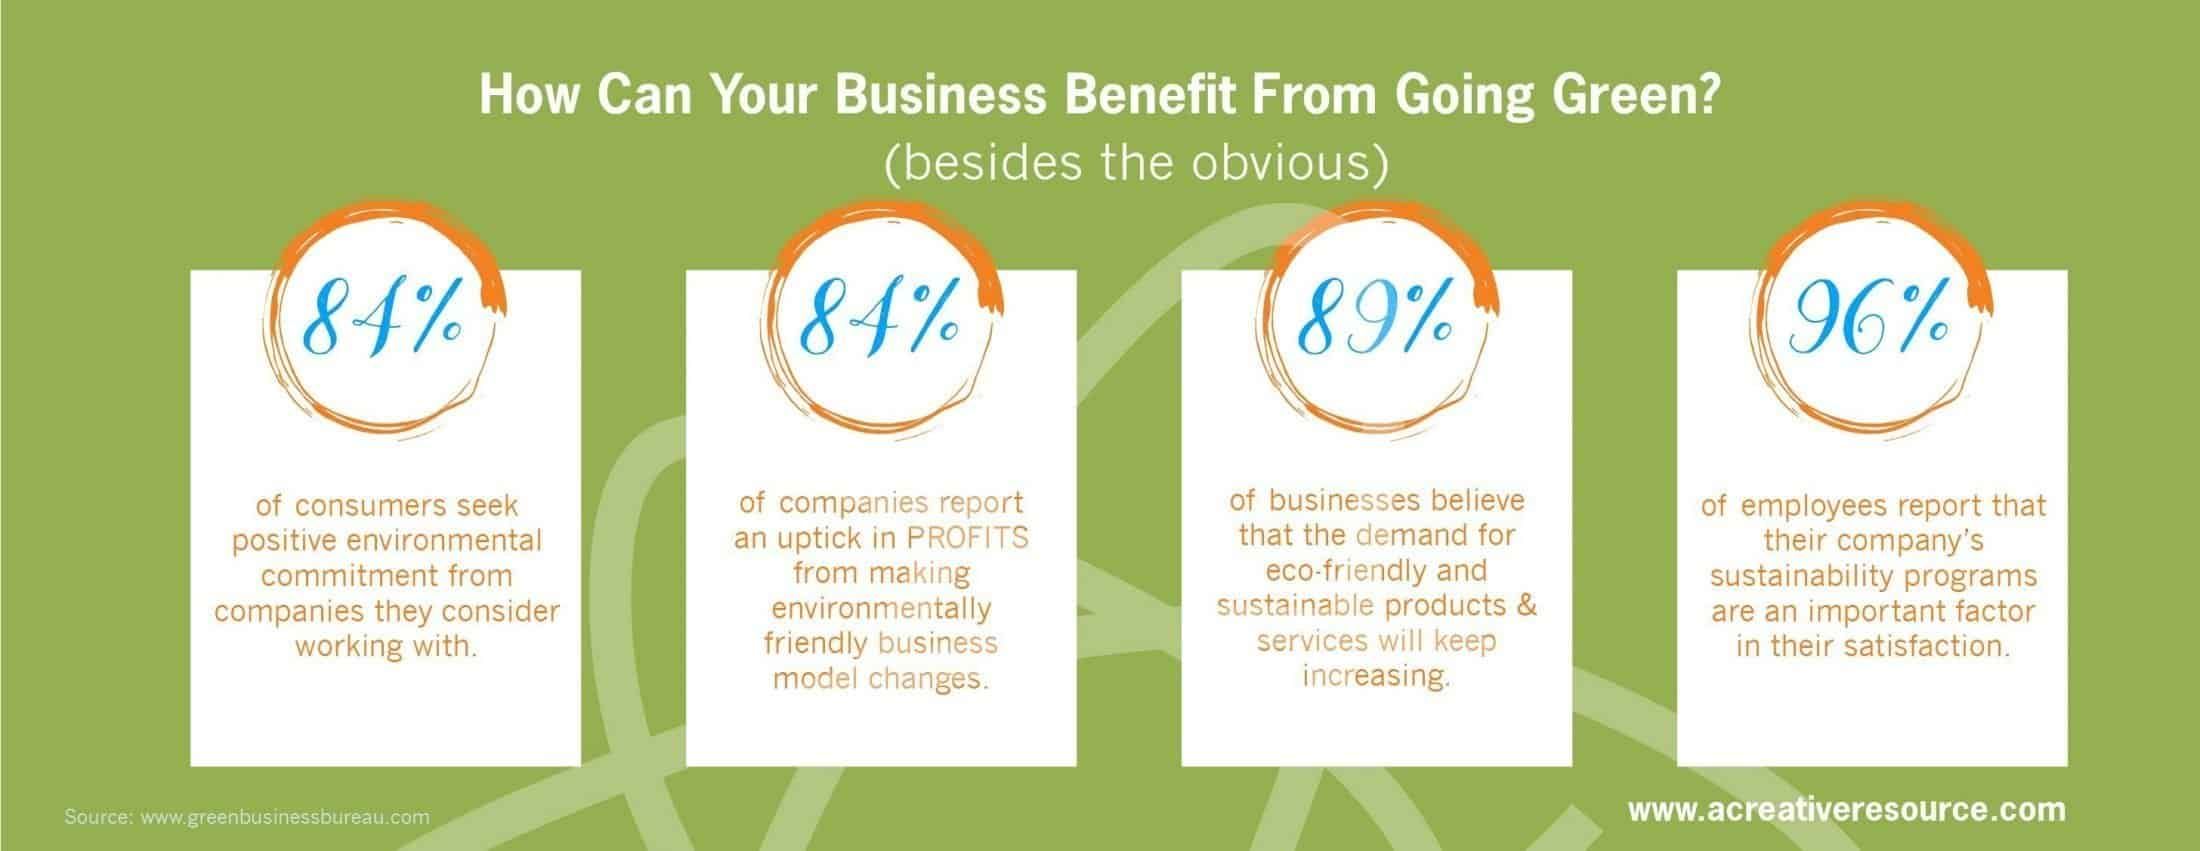 Infographic on the benefits of going green with your business